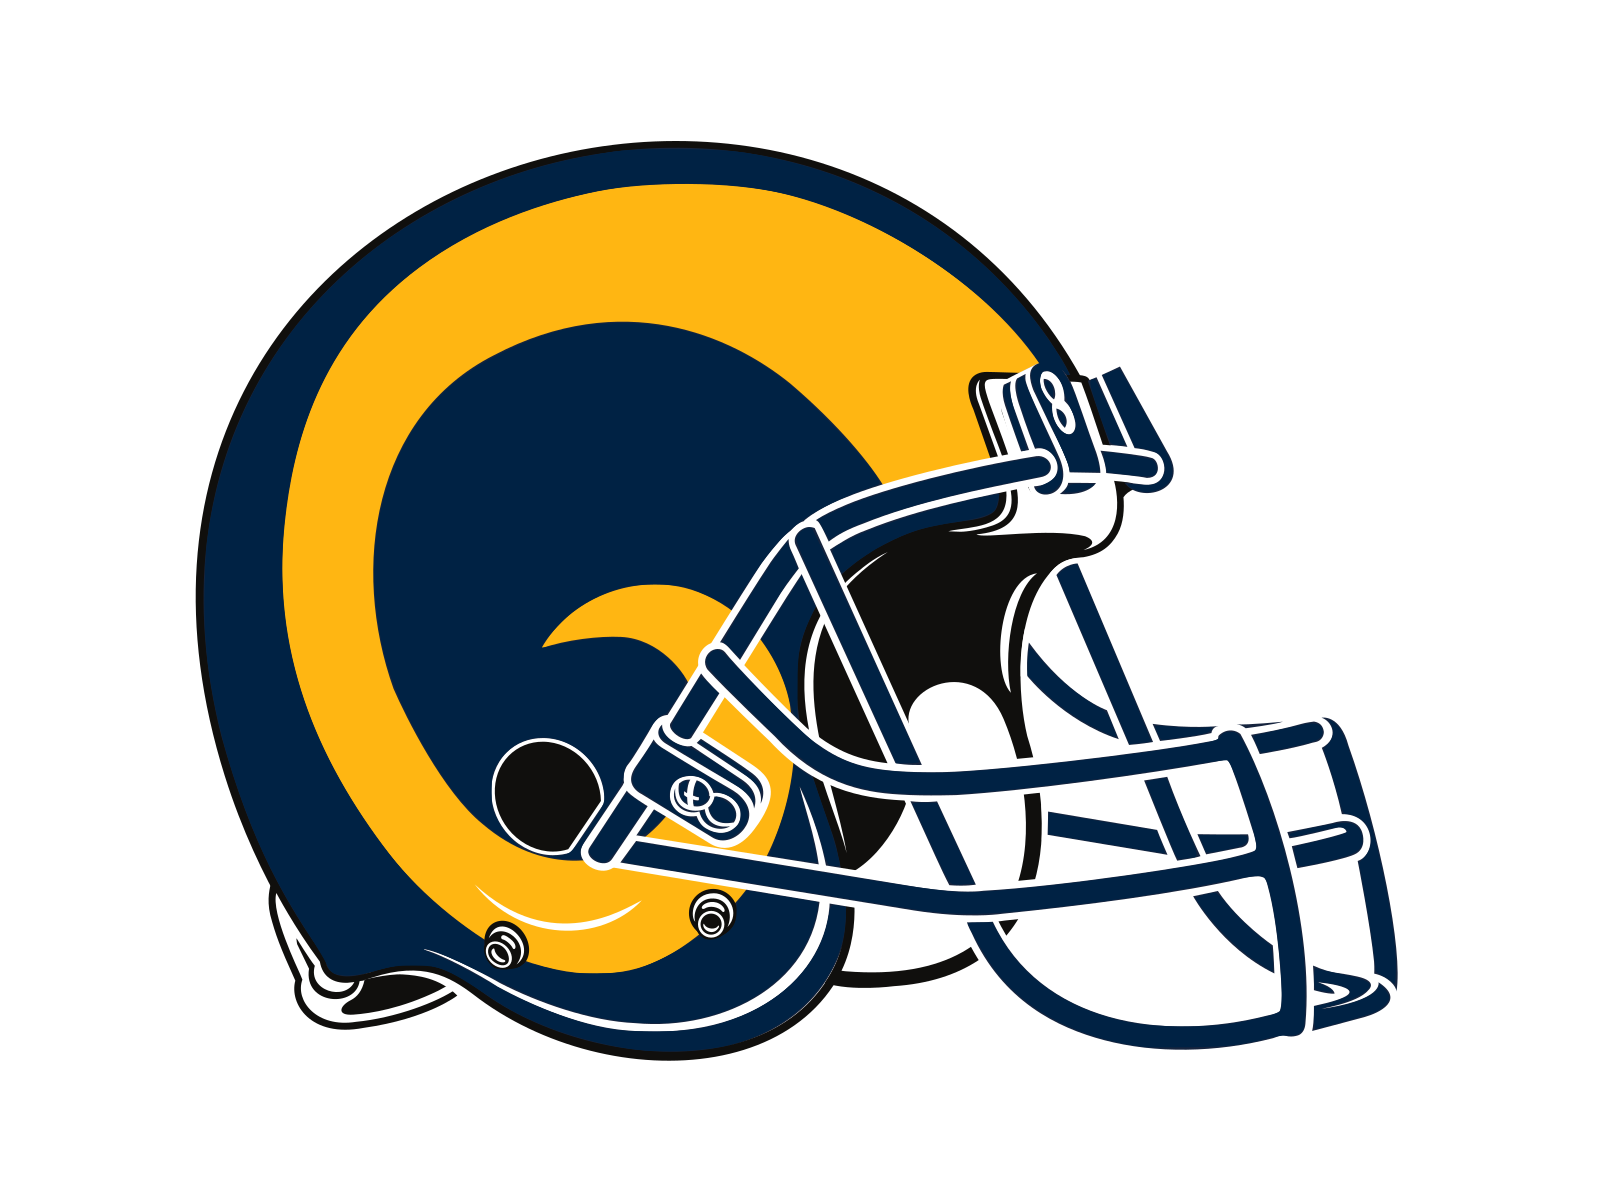 Rams football logo clipart png library library Los Angeles Rams Logo PNG Transparent & SVG Vector - Freebie Supply png library library